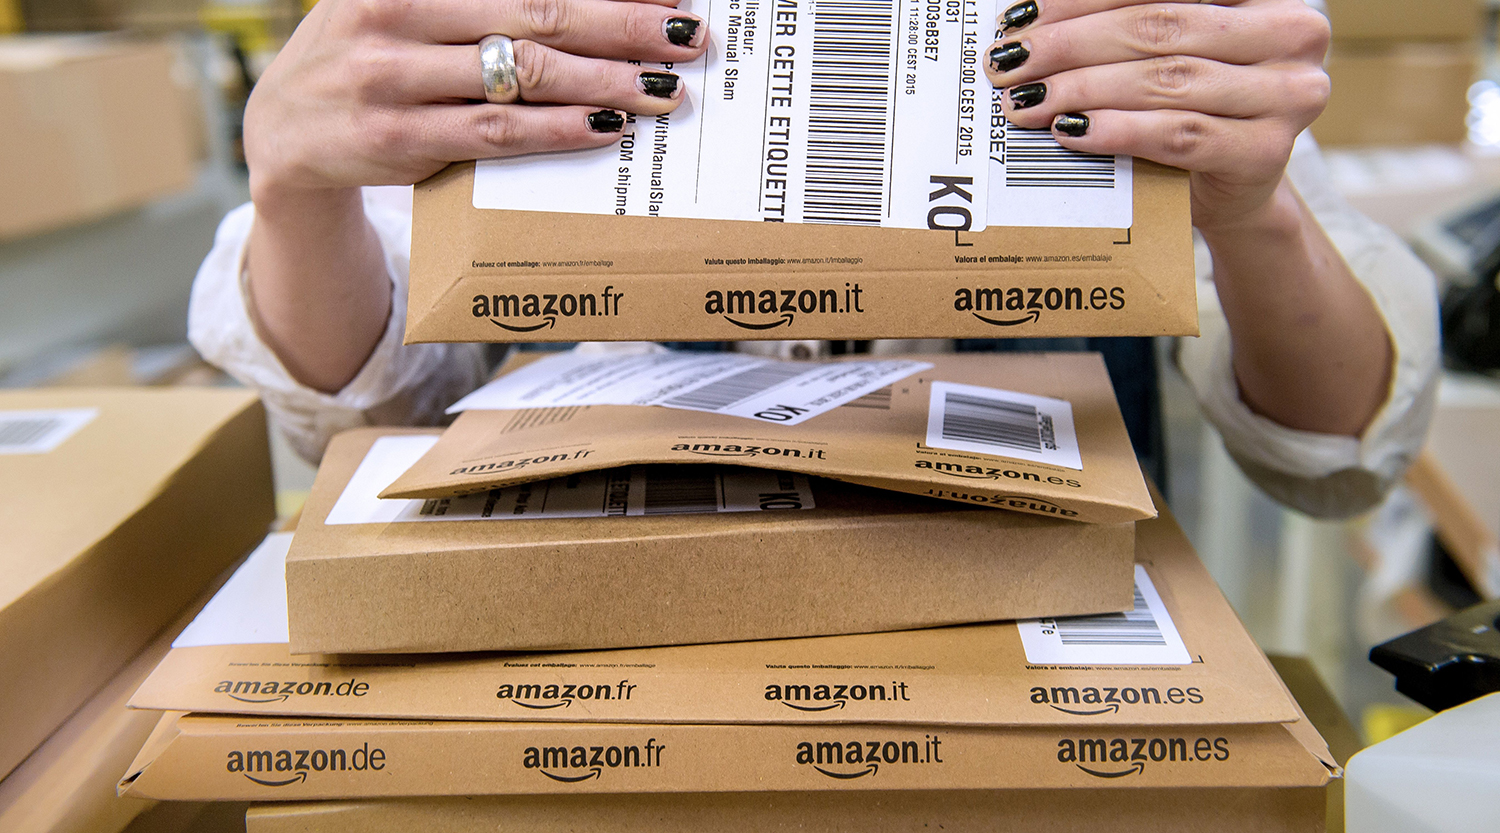 What You Need to Know About Amazon's One-Day Deal